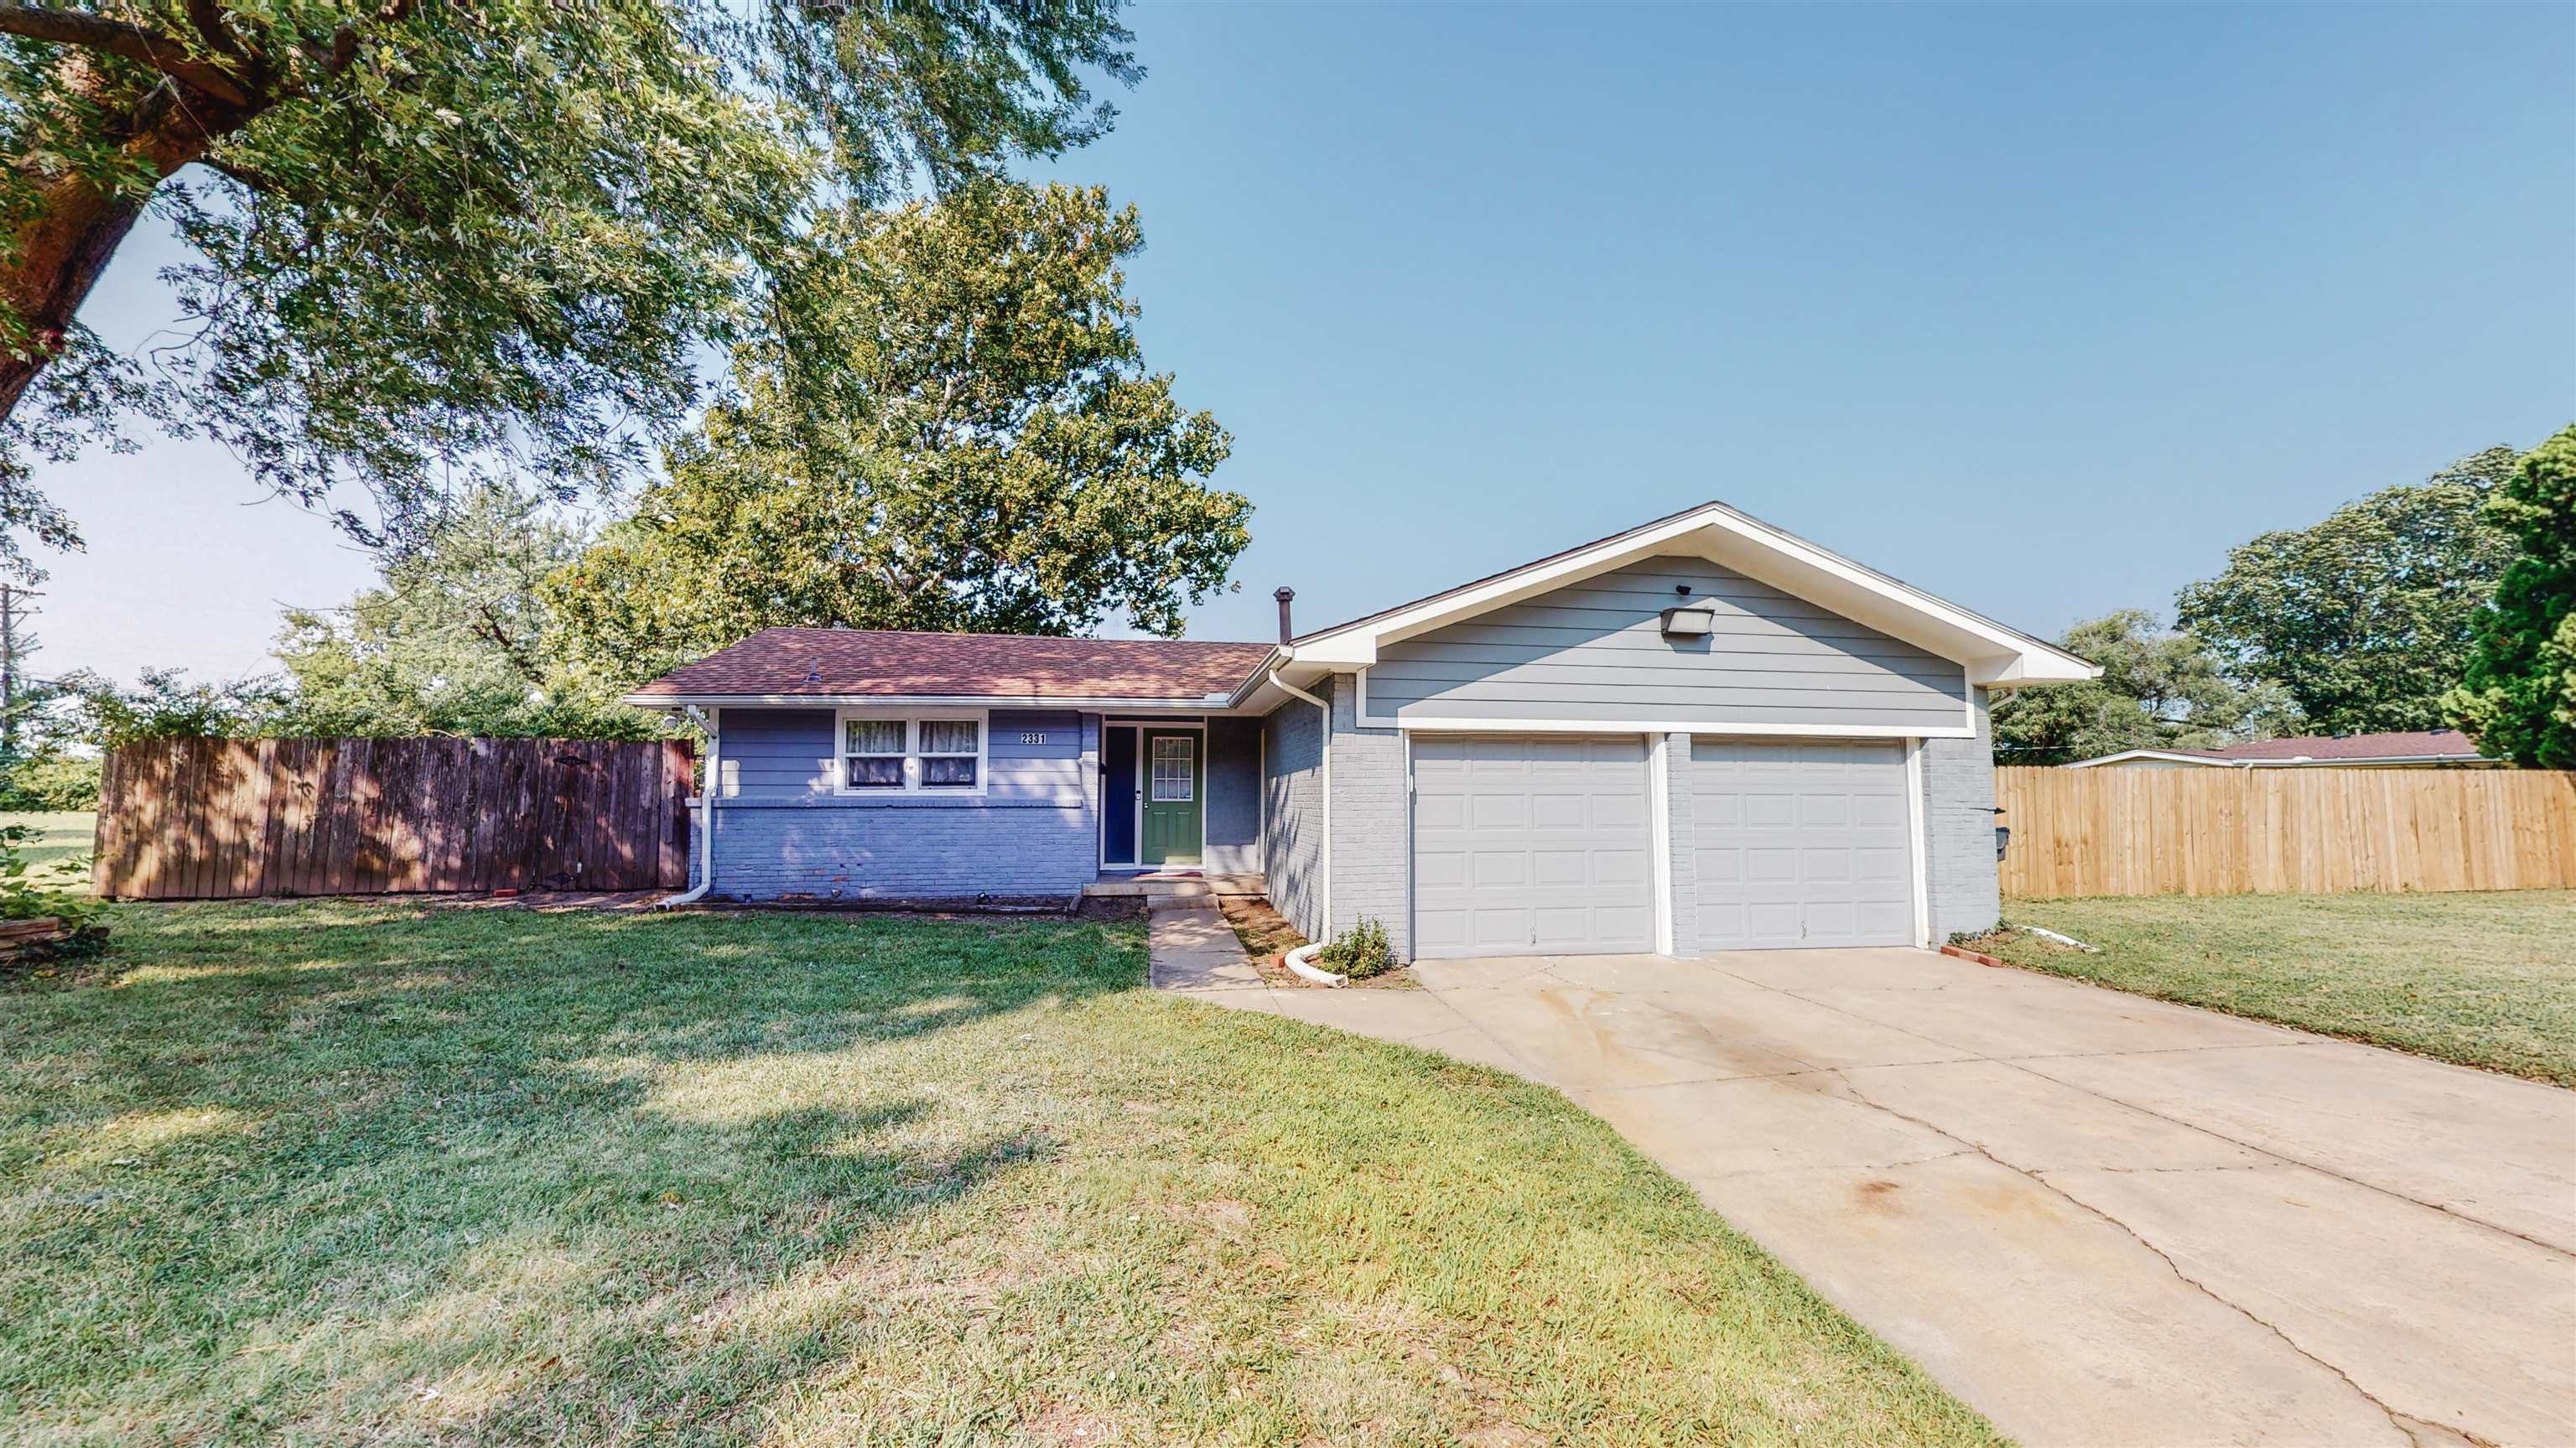 This move in ready cozy ranch home is located walking distance to Wichita State University. The home